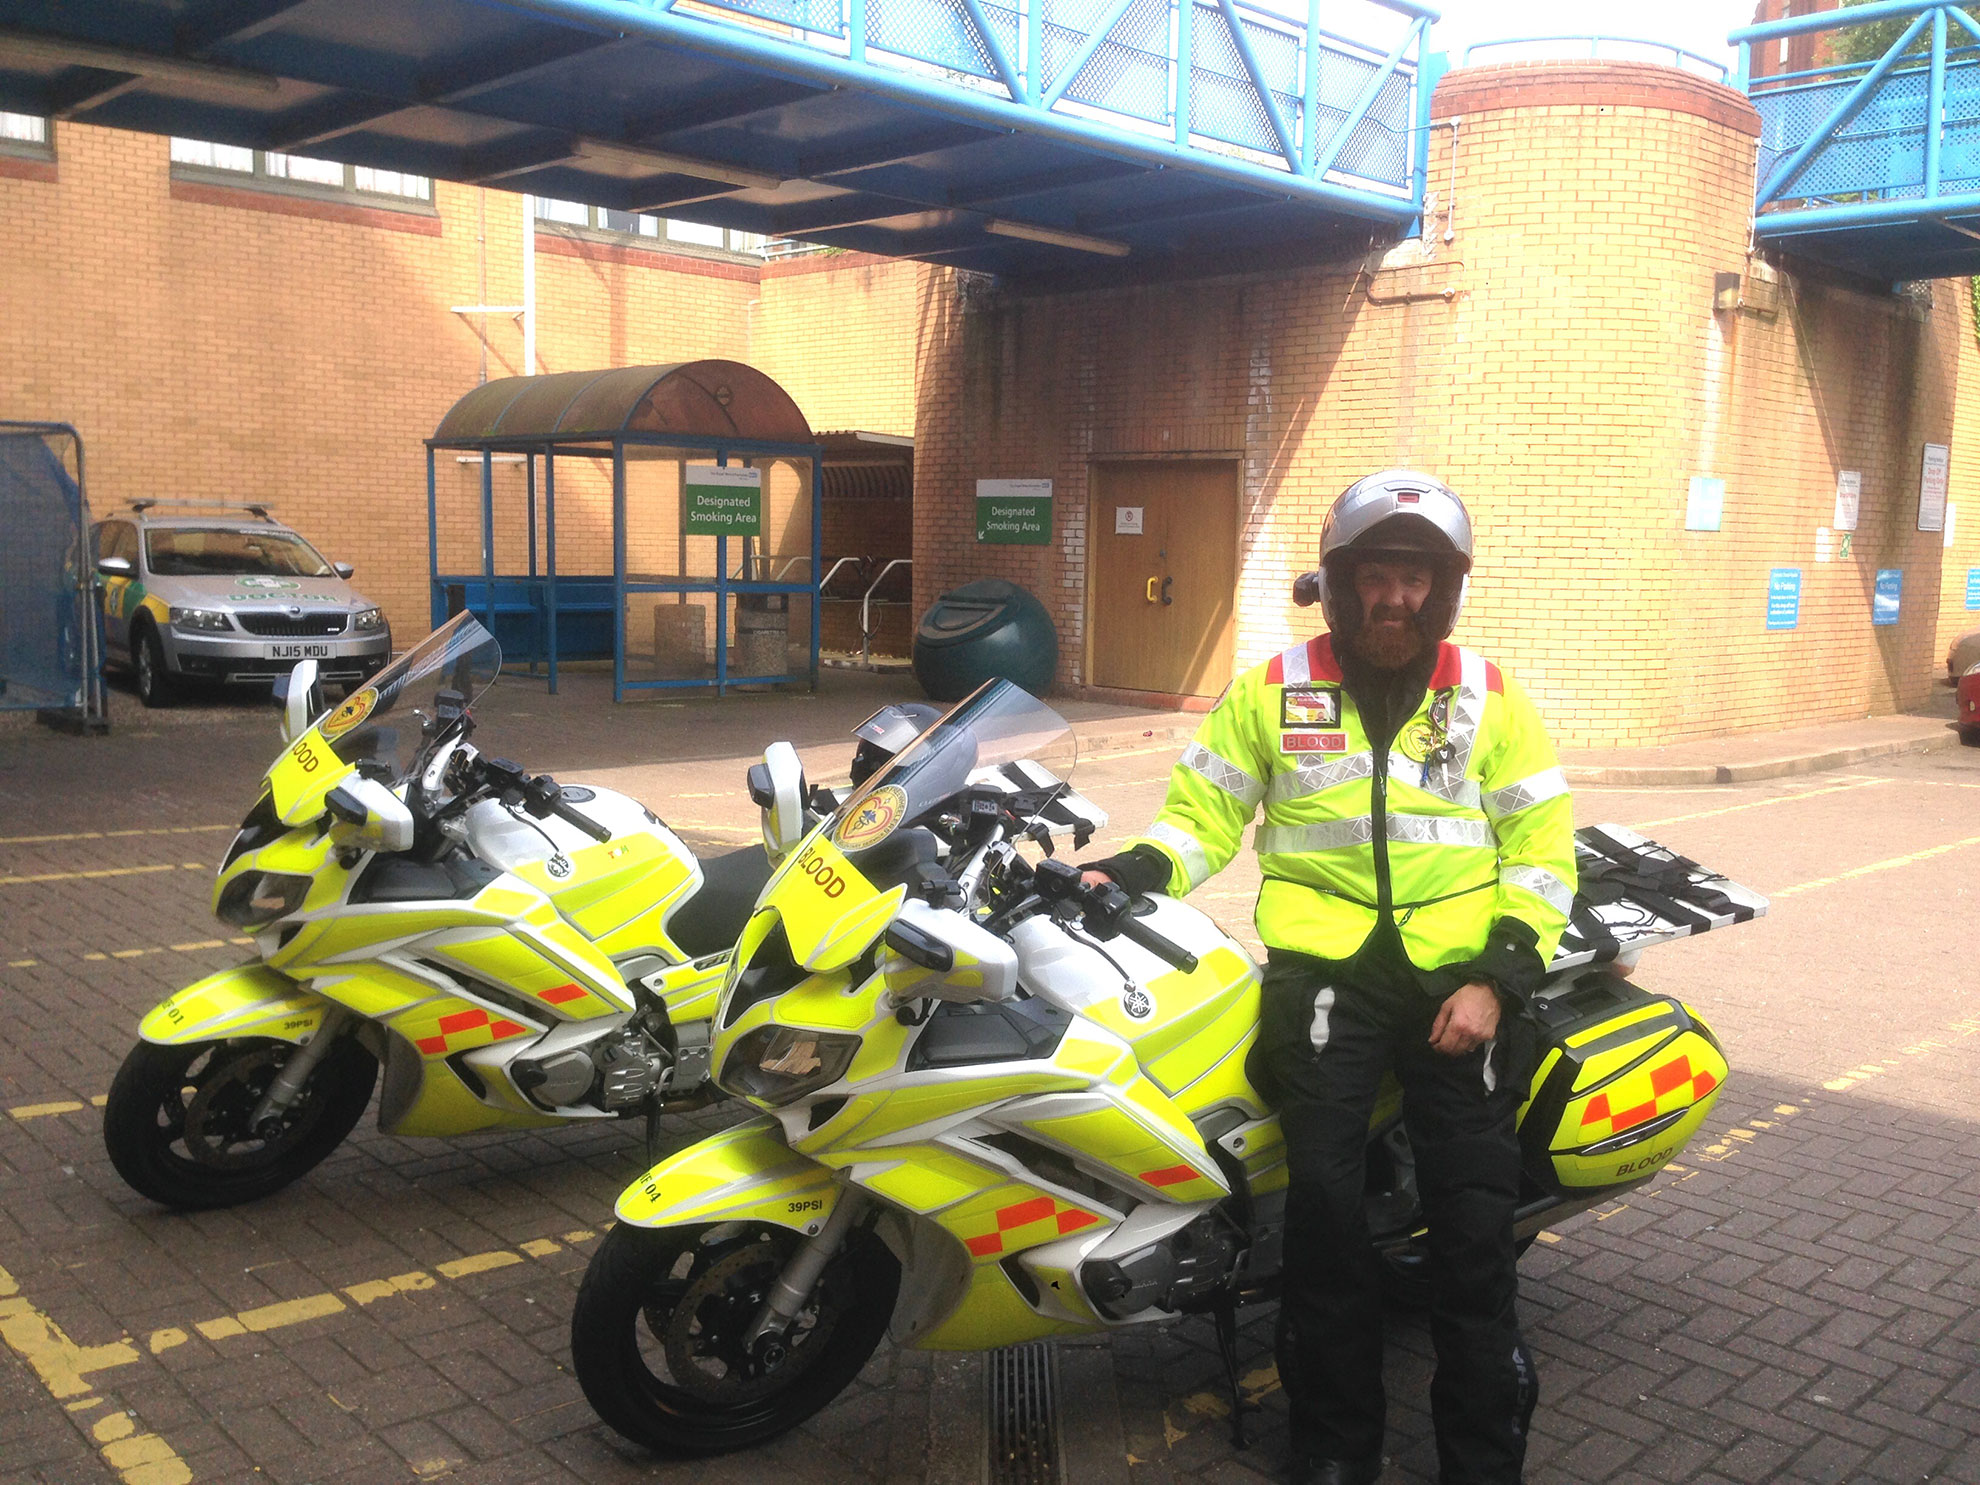 NHS blood bikers